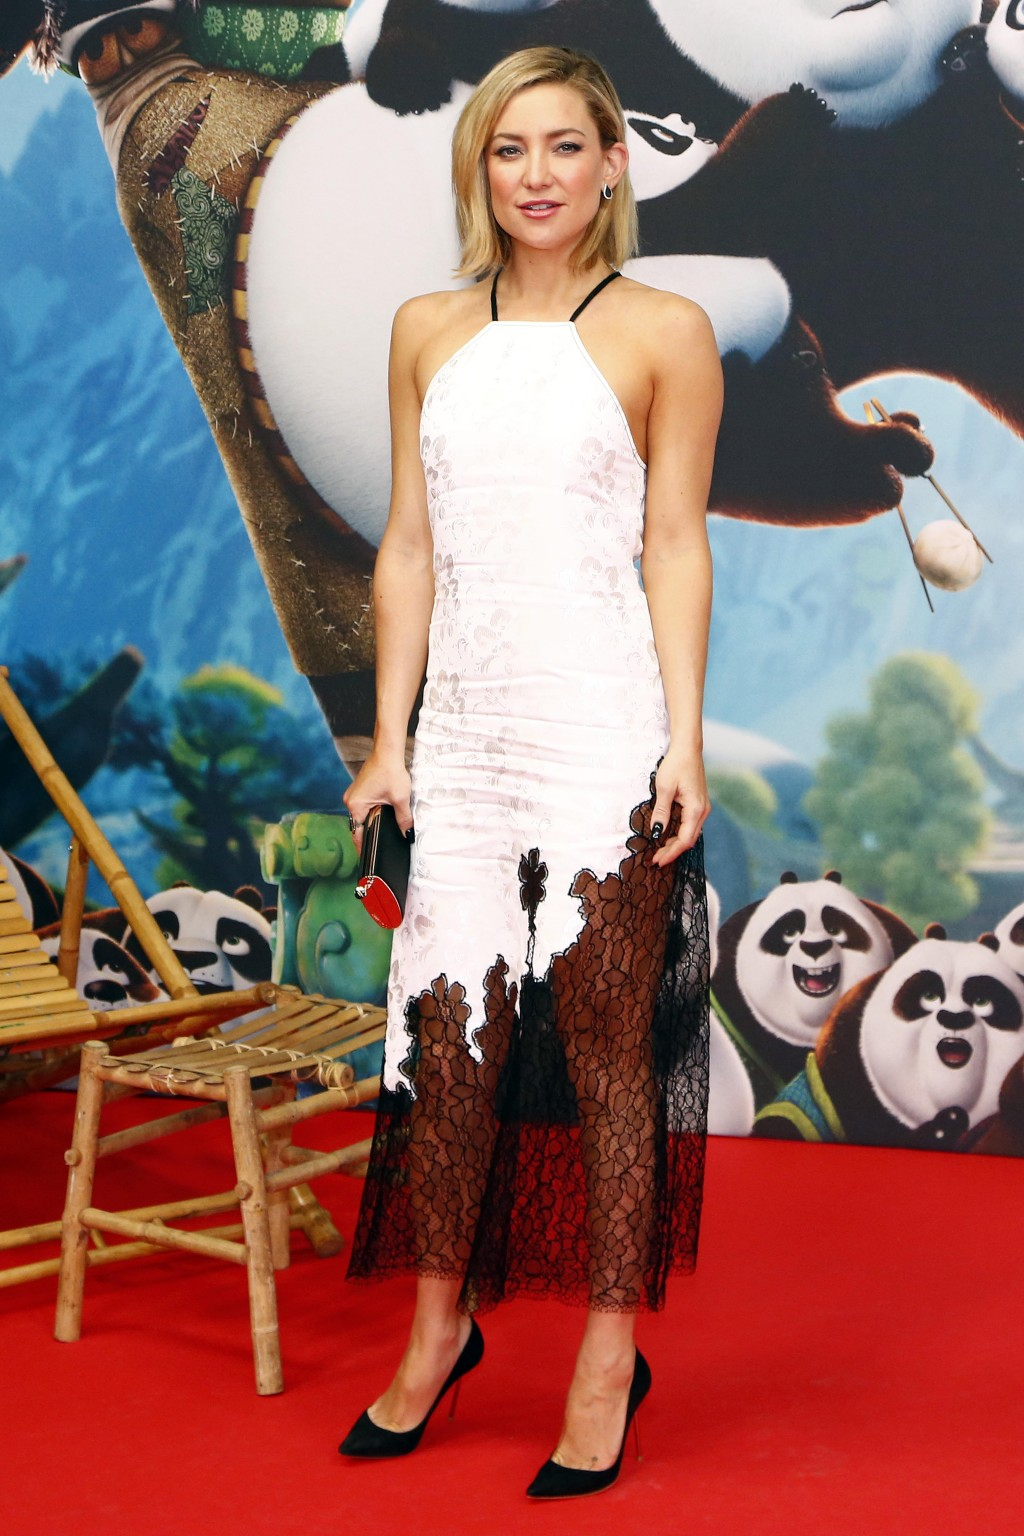 Kate Hudson in a black-and-white halter Wes Gordon dress at the Kung Fu Panda 3 premiere in Berlin.